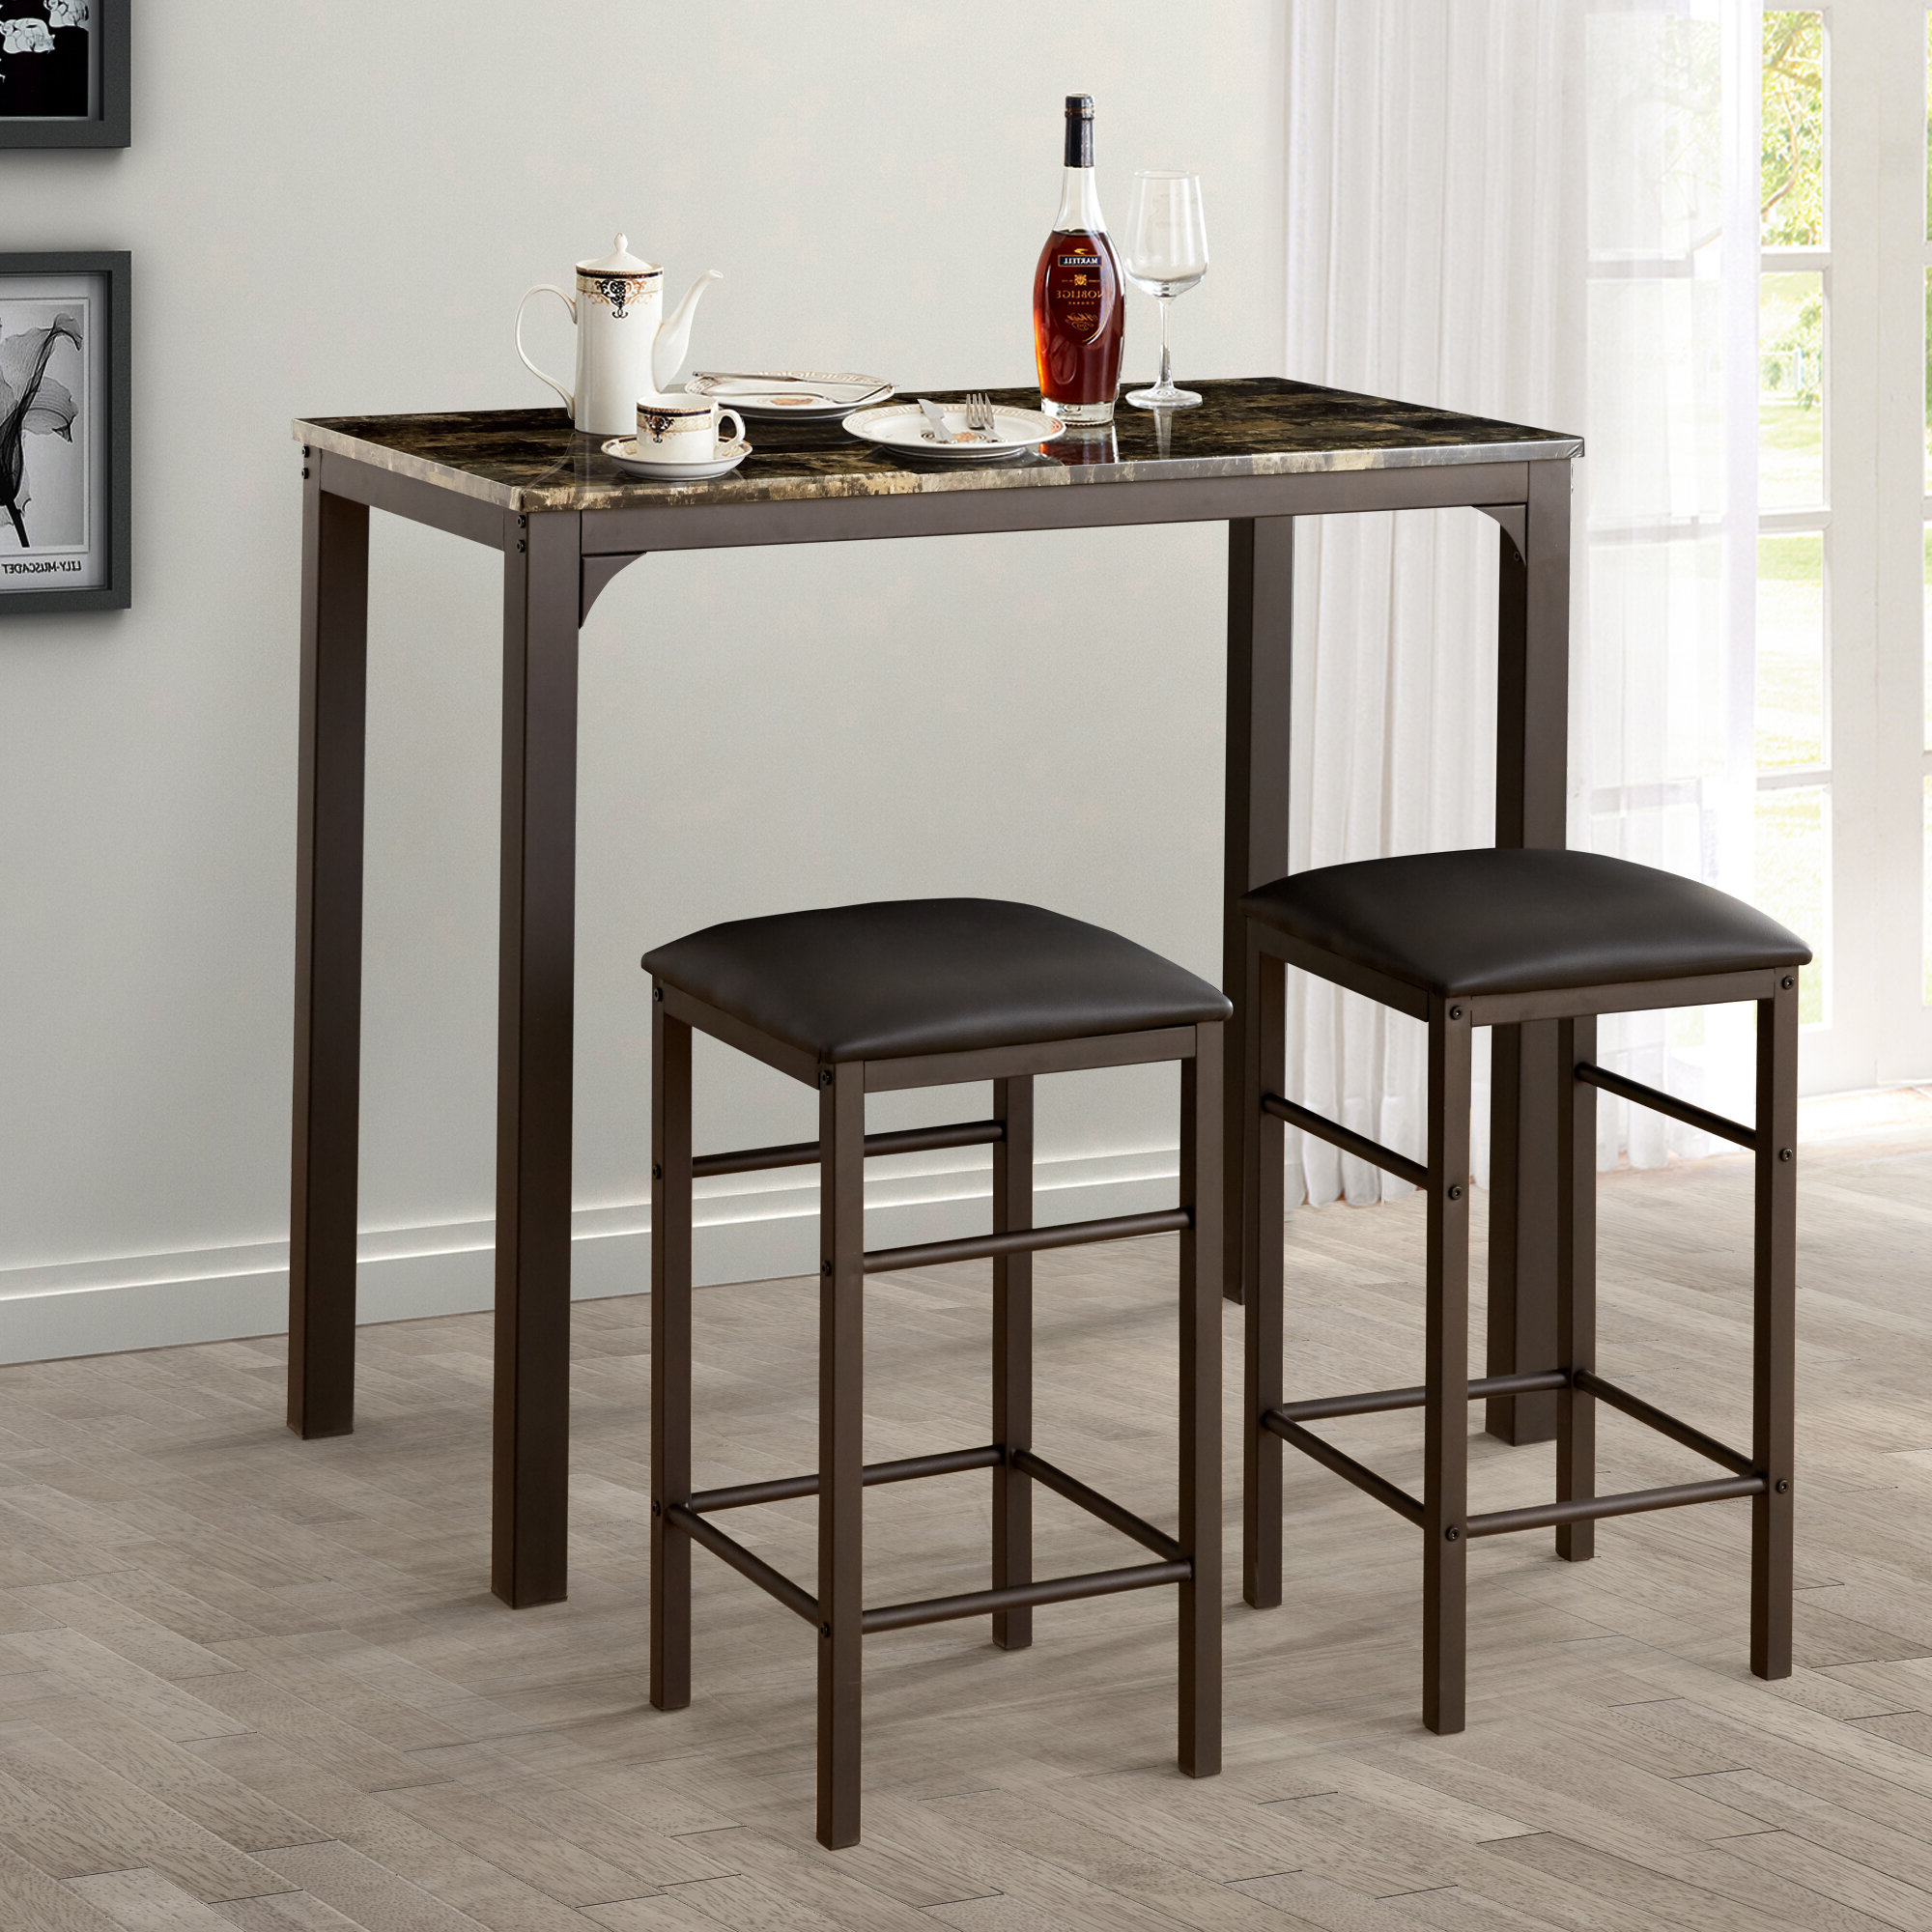 Kernville 3 Piece Counter Height Dining Sets Regarding Well Known Lillard 3 Piece Breakfast Nook Dining Set (View 11 of 20)